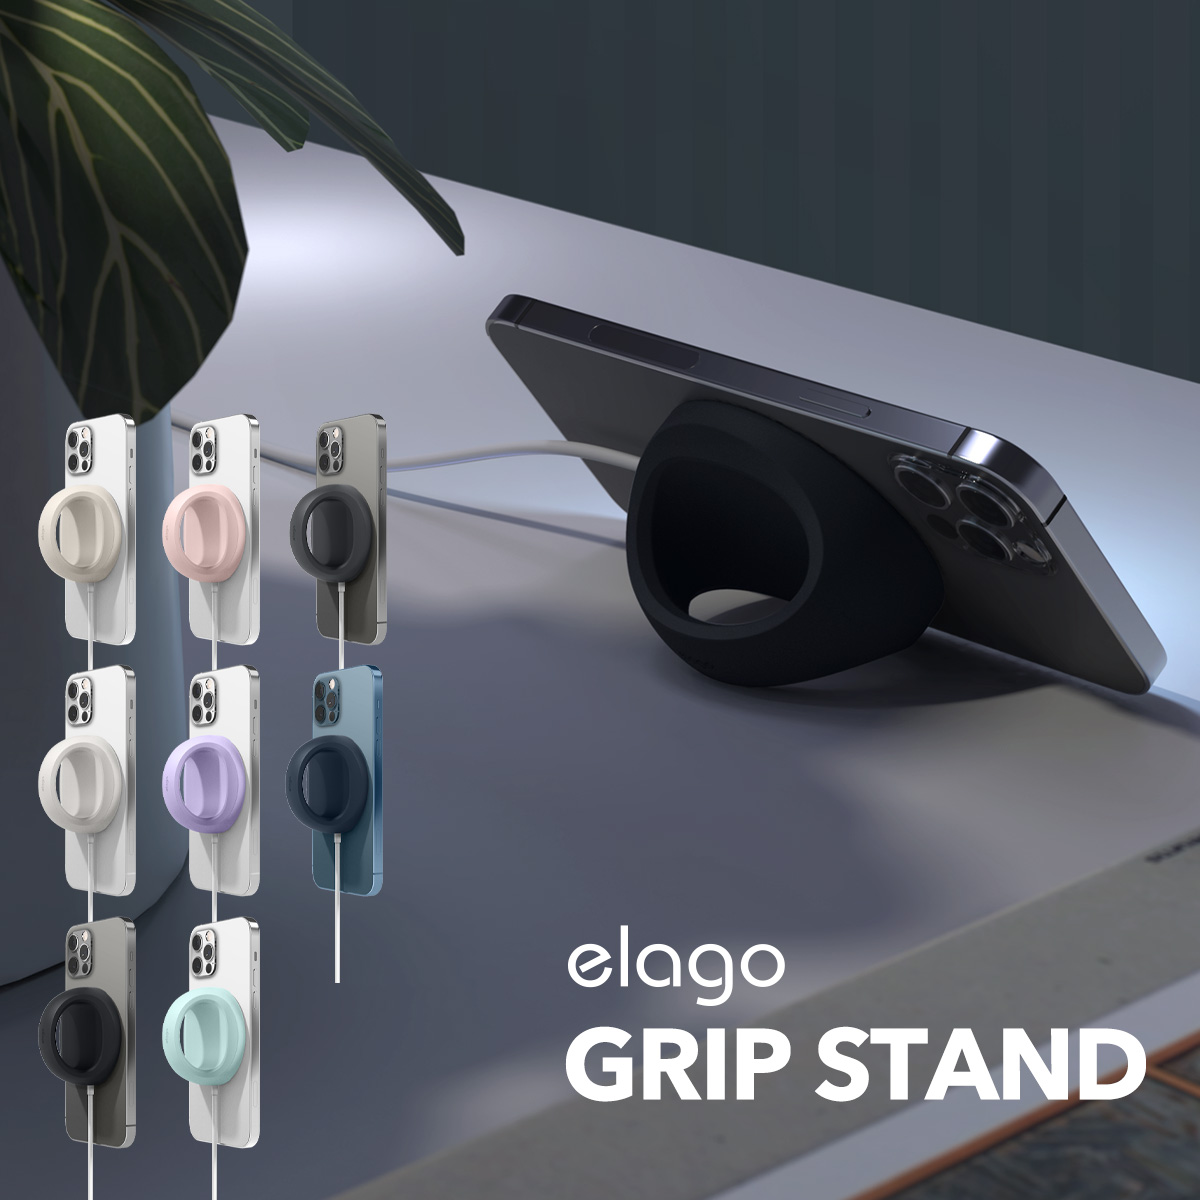 elago GRIP STAND for MagSafe Charger